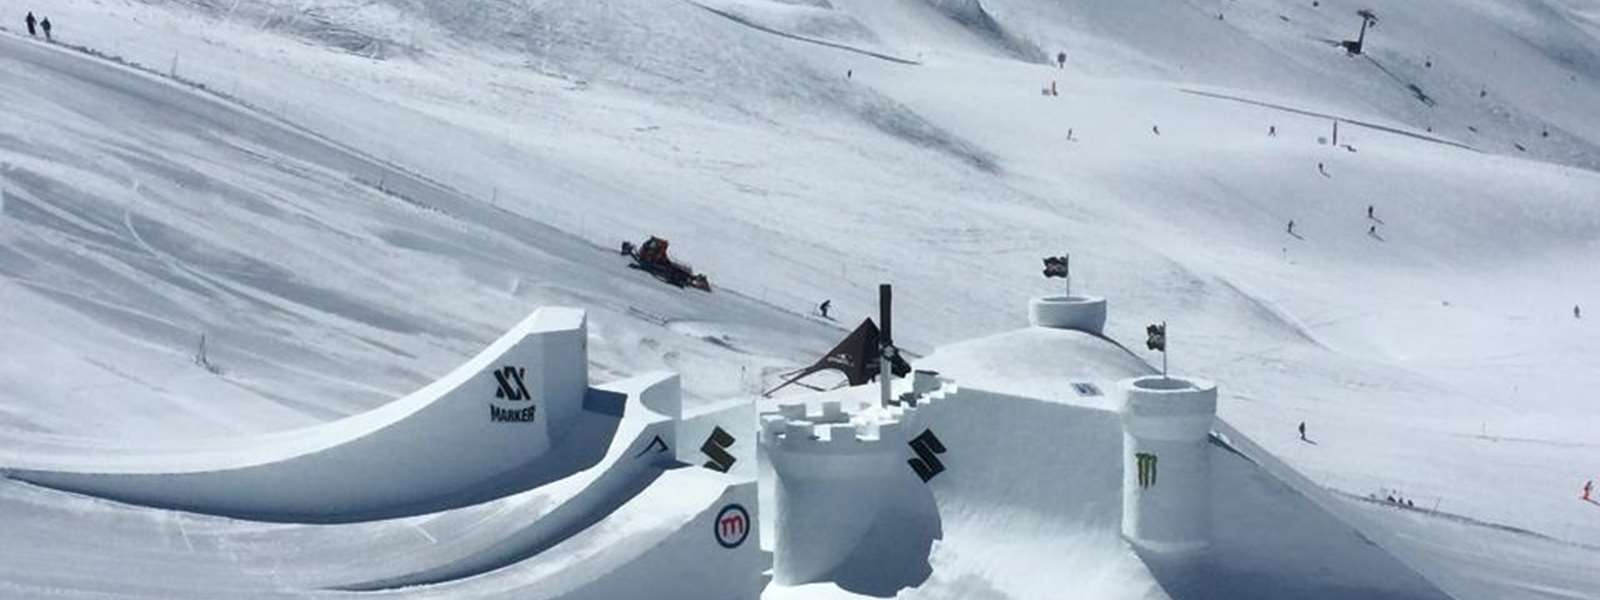 Mottolino Fun Mountain, Livigno - Italien